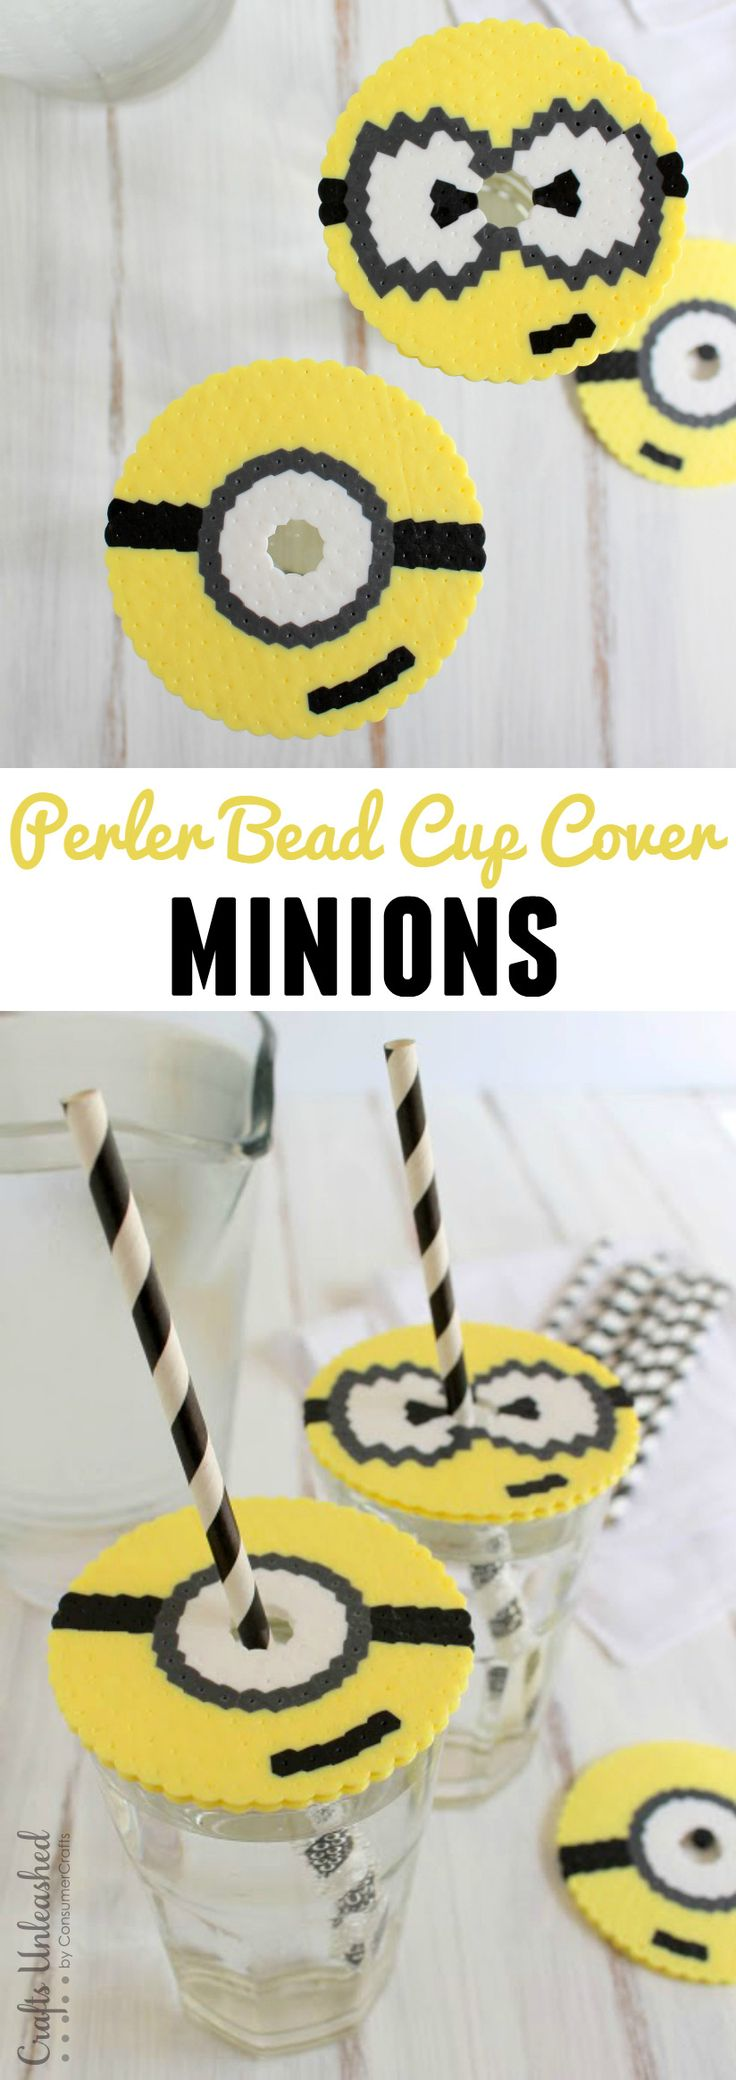 These DIY minion cup covers are perfect for keeping bugs out of your drink while on the patio. They're so easy & fun to make the kids will love them!